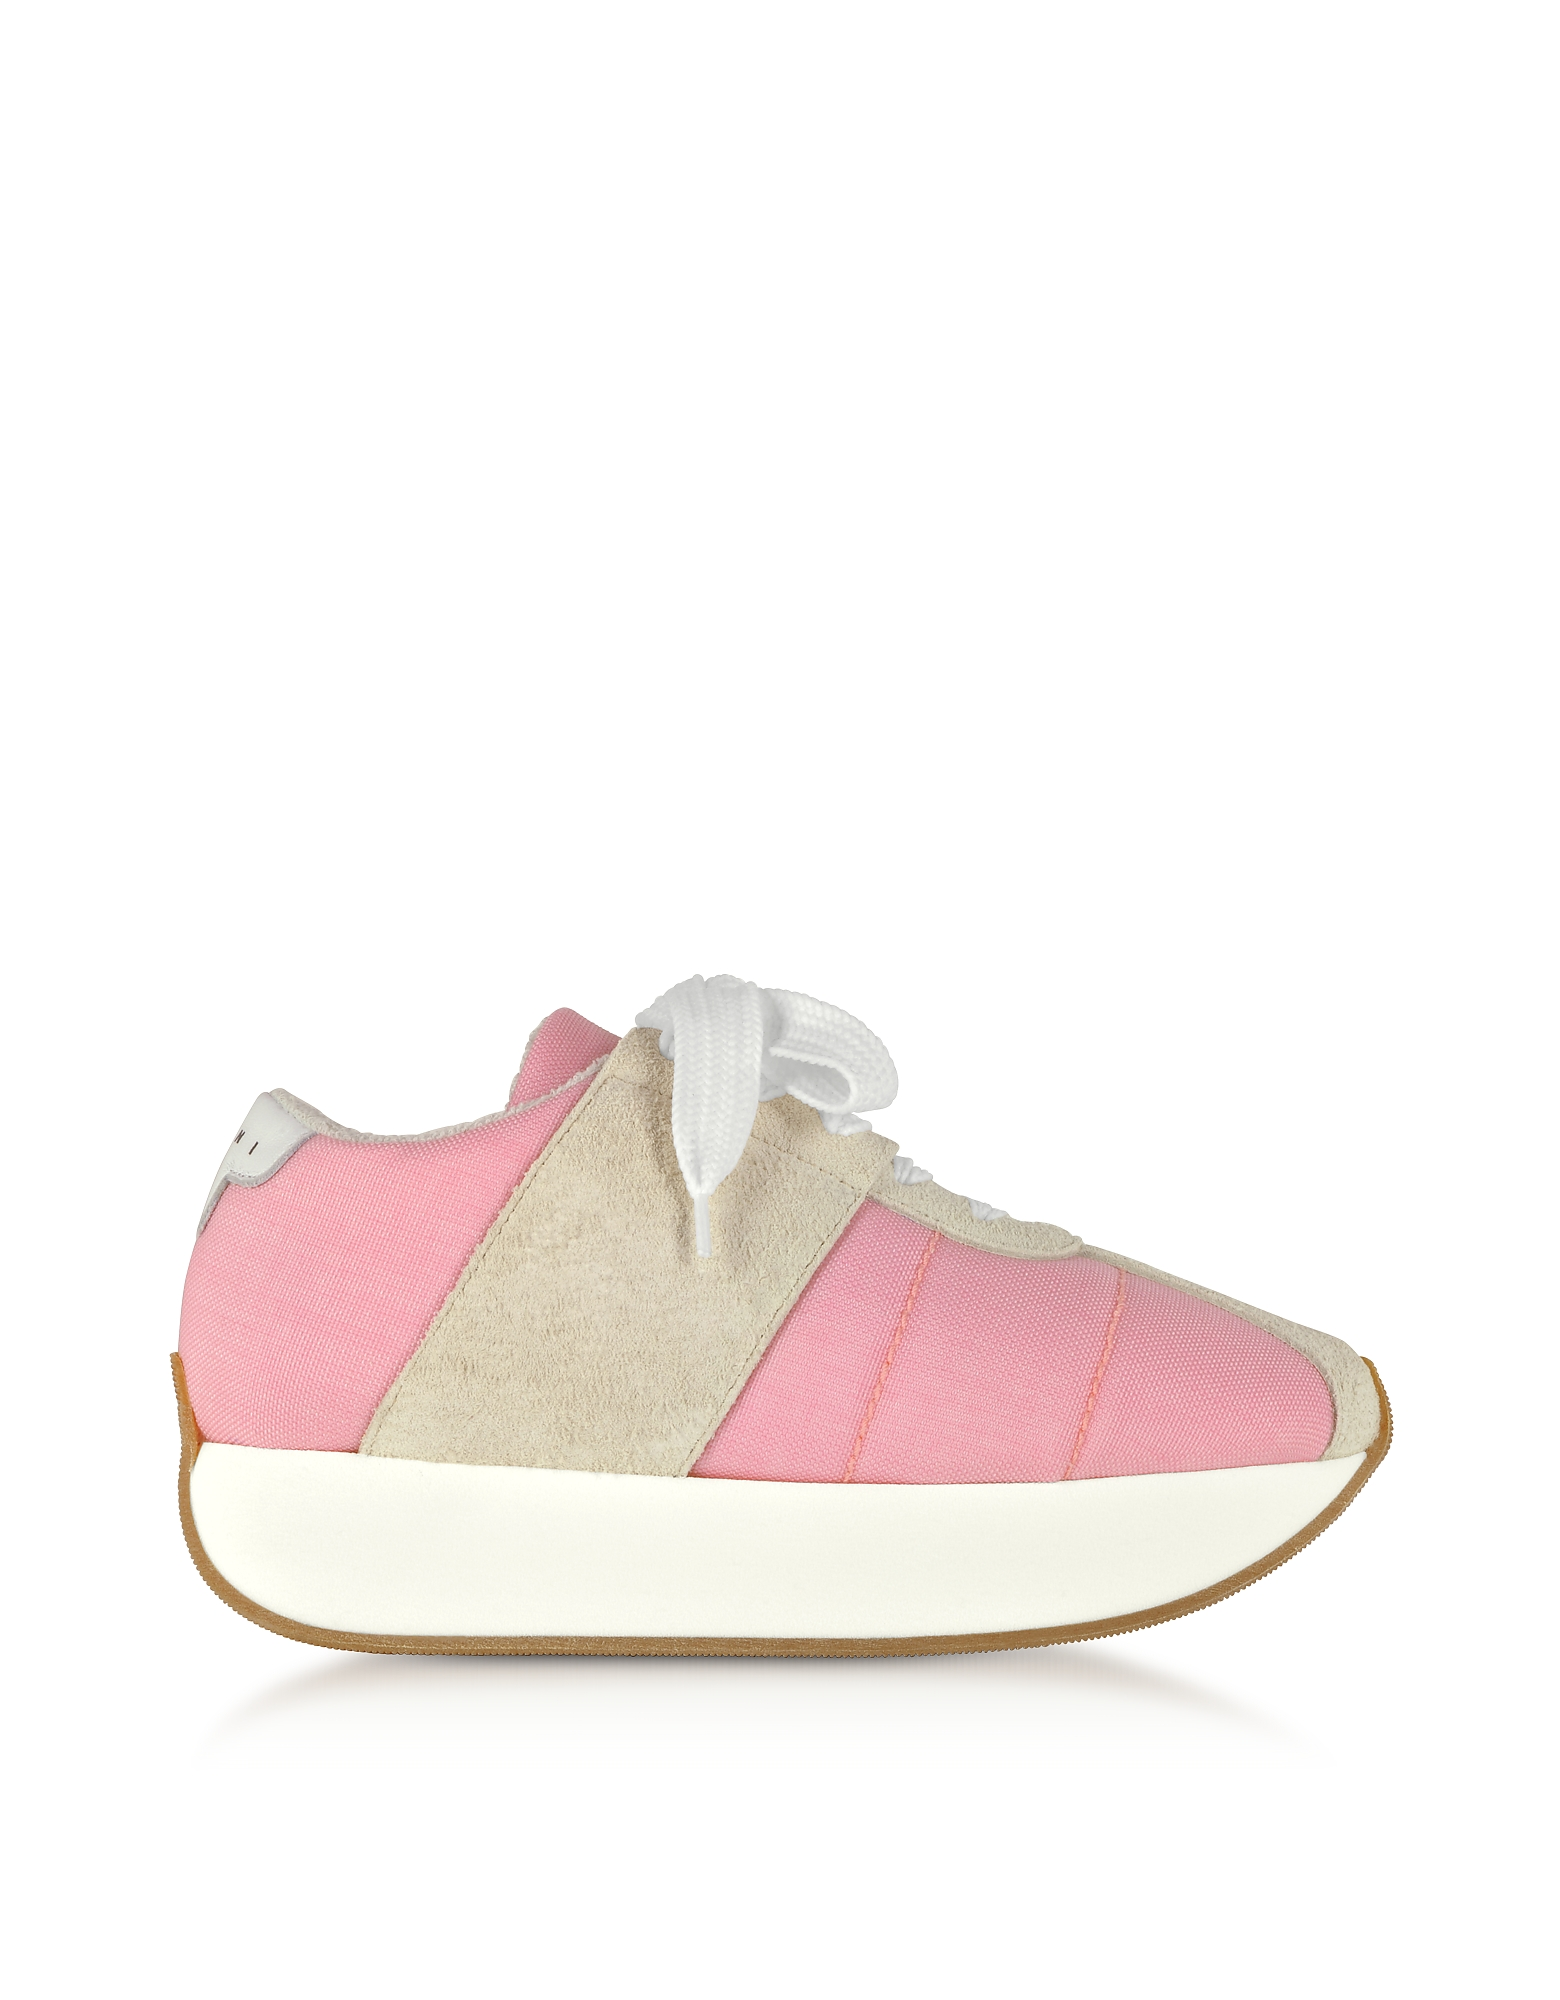 Marni Shoes, Quartz Tech Fabric Big Foot Sneakers